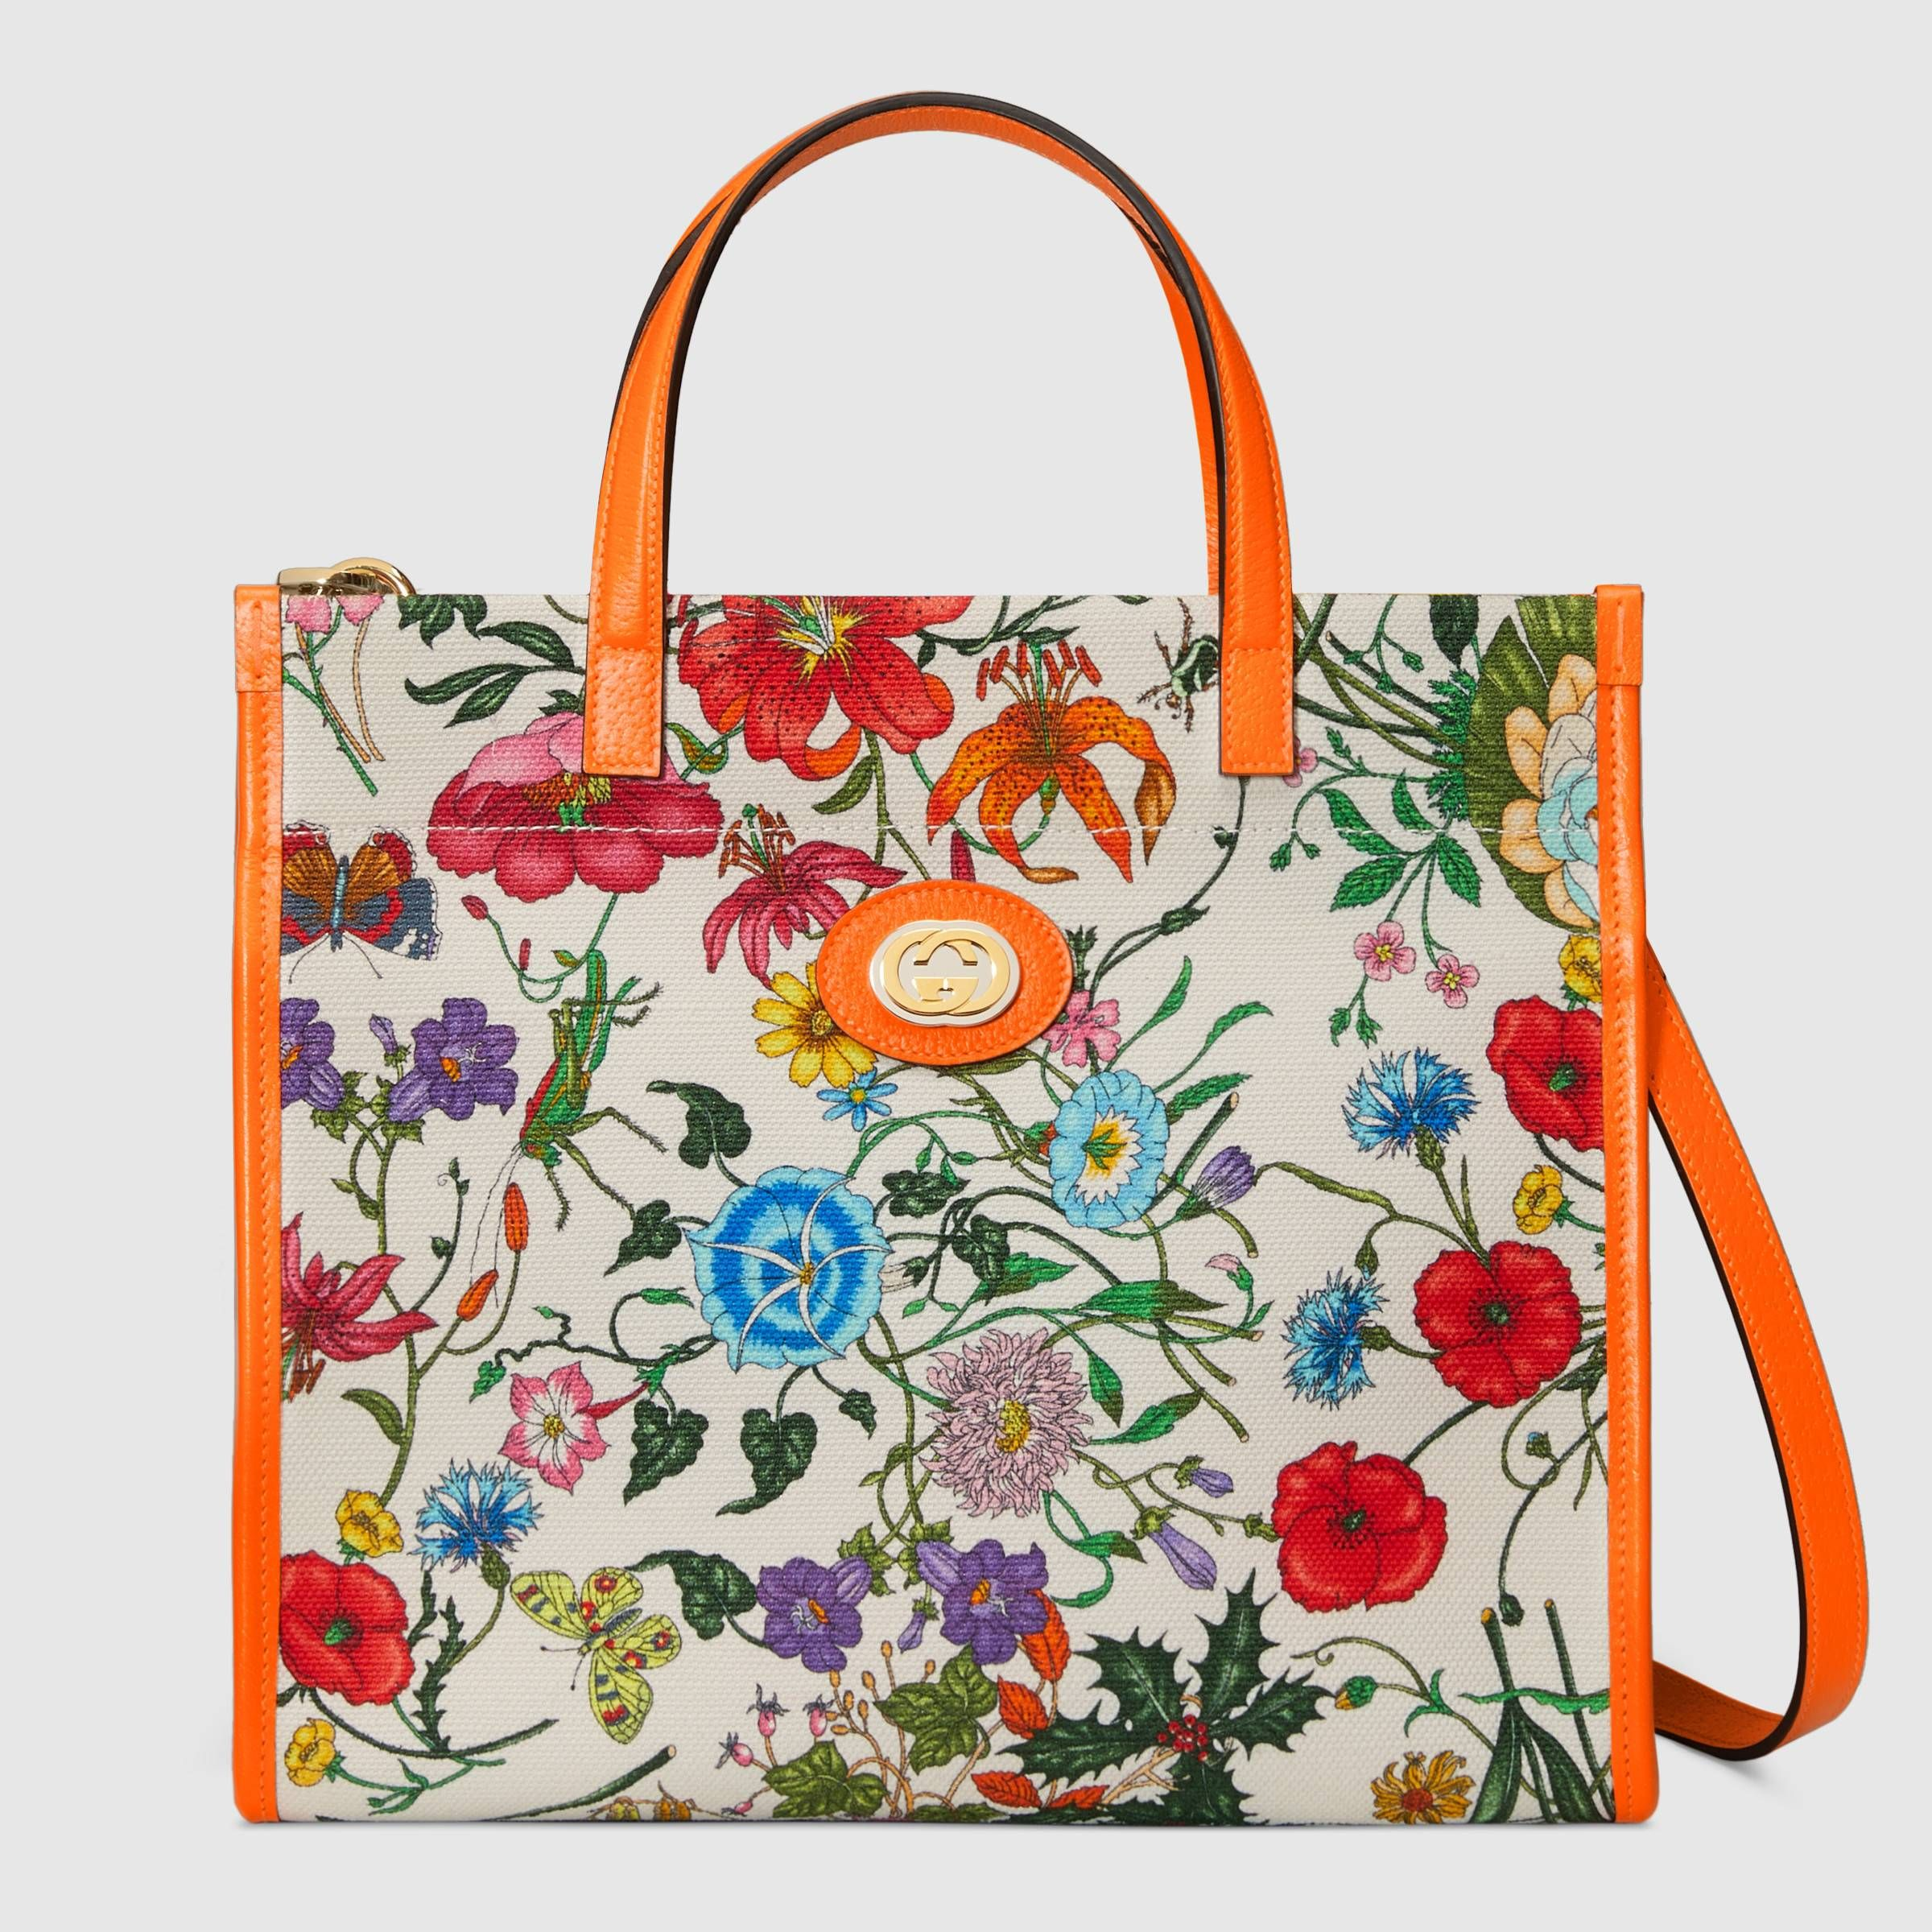 d9fc6b24e Medium Flora tote bag in 2019 | It's all about the BAG! | Bags, Tote ...